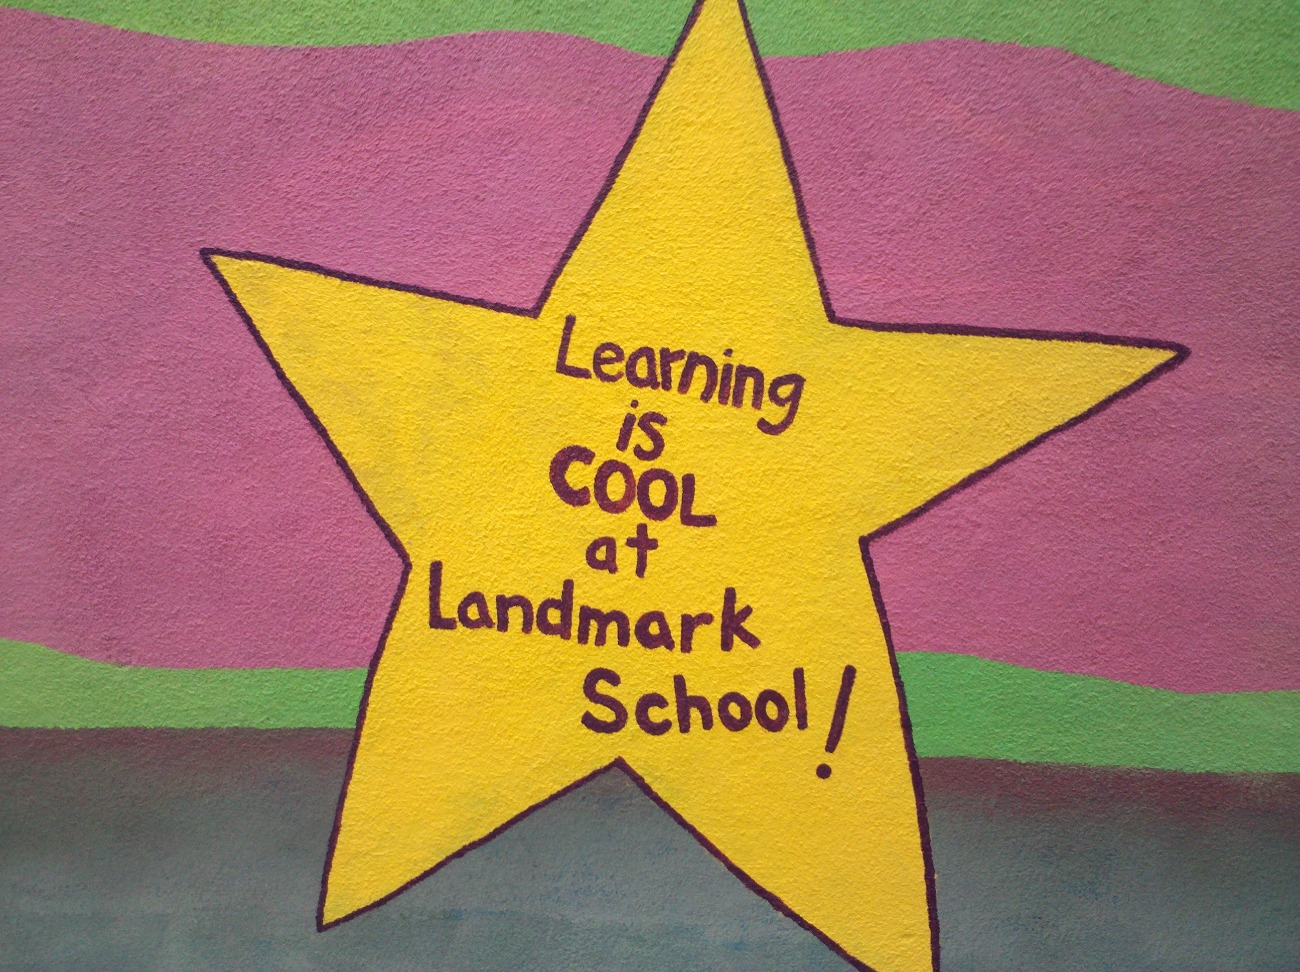 Learning is COOL at Landmark School!